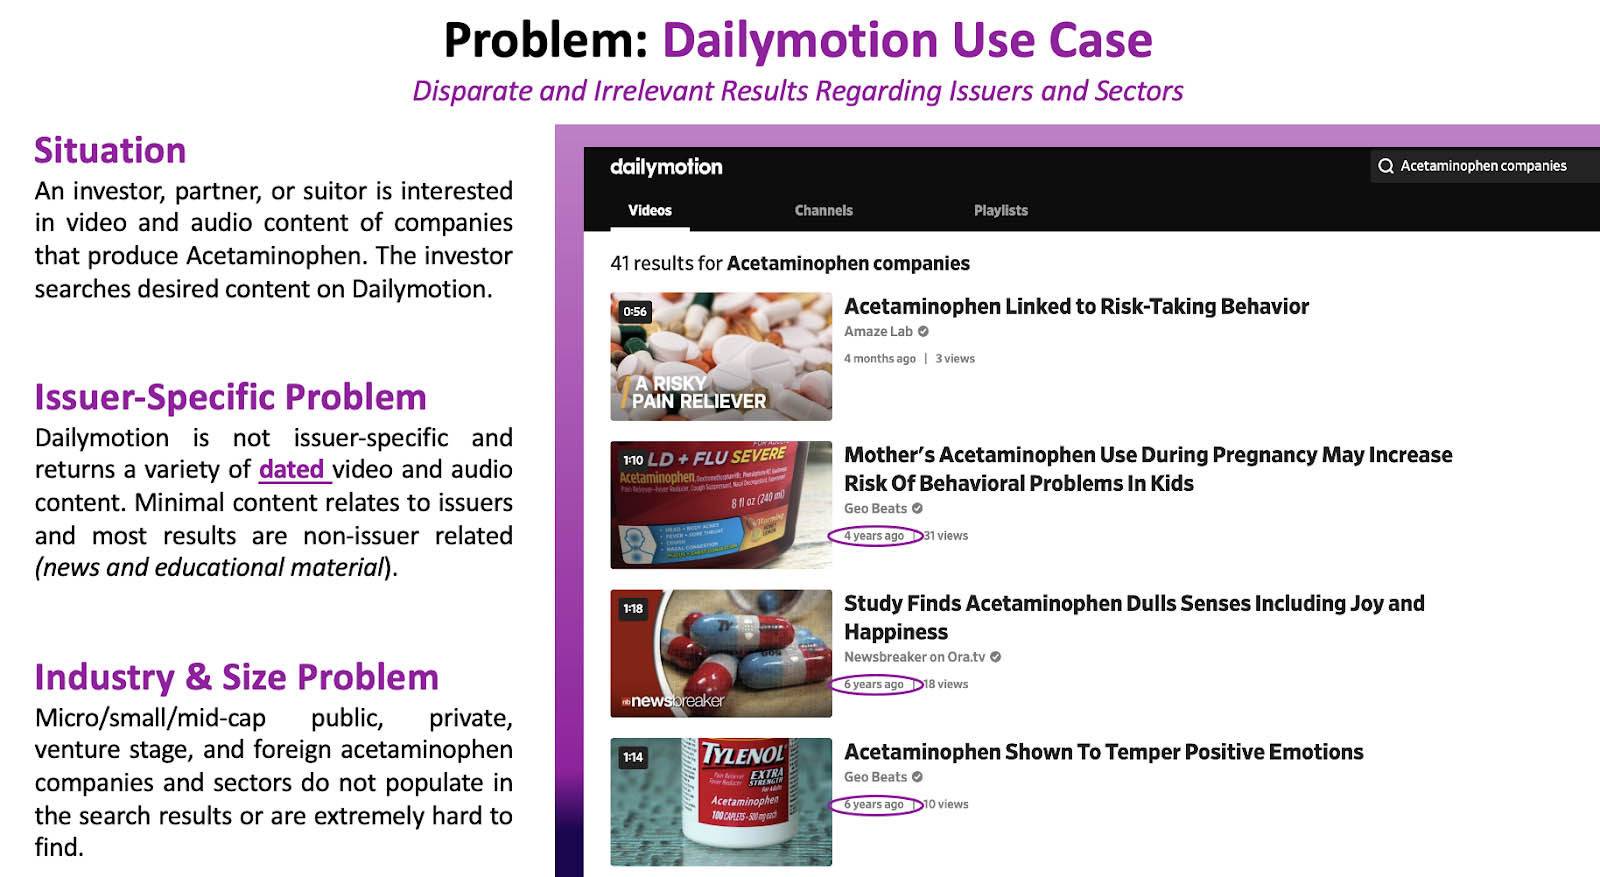 Dailymotion Use Case